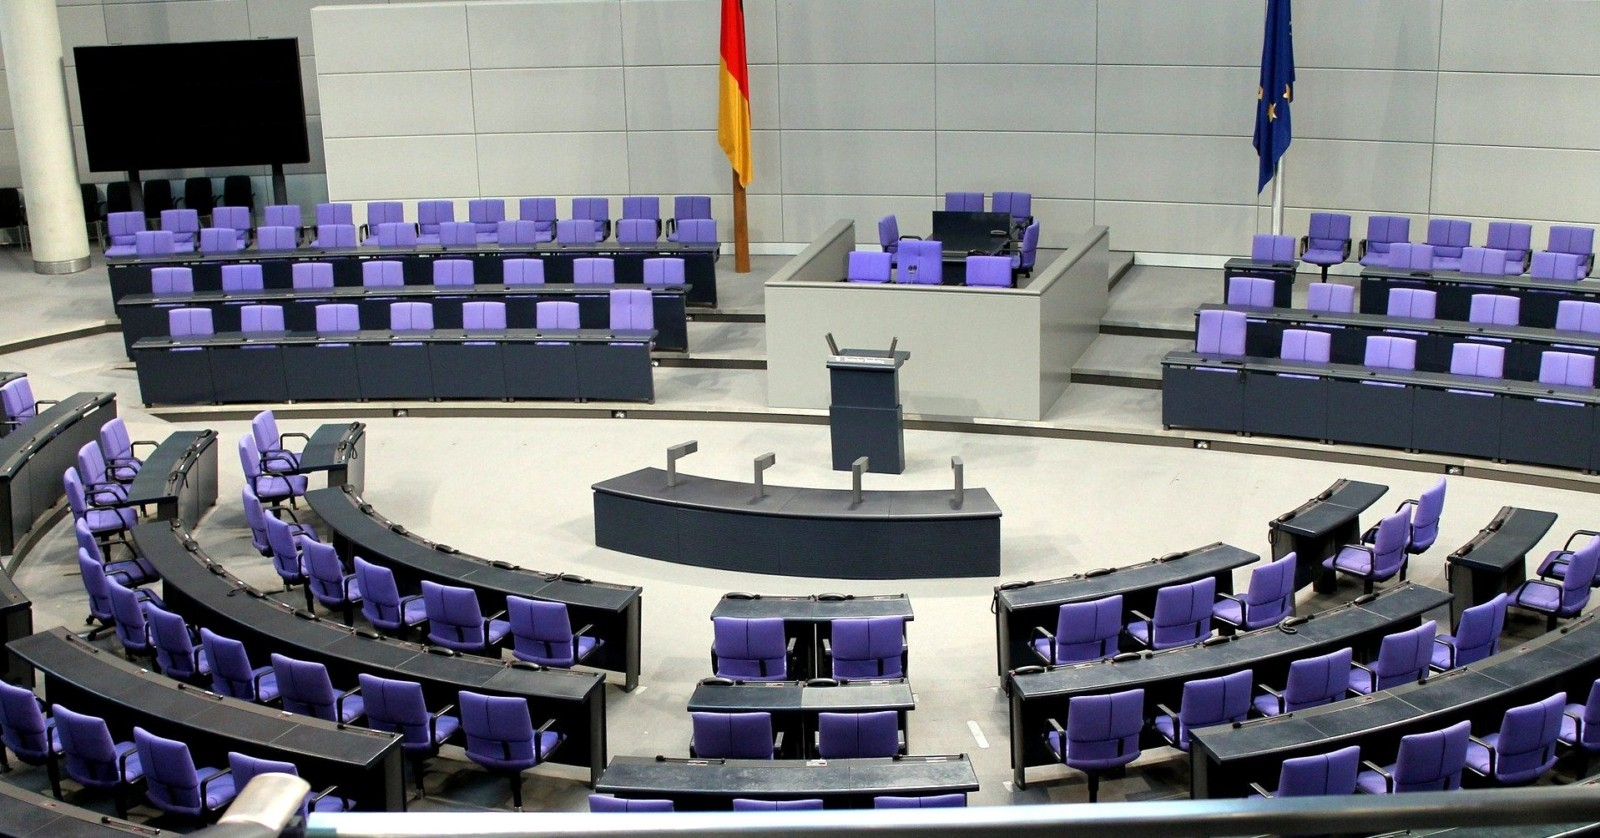 Open letter to Karin Maag, Member of the Bundestag – Reimbursement of Homeopathy